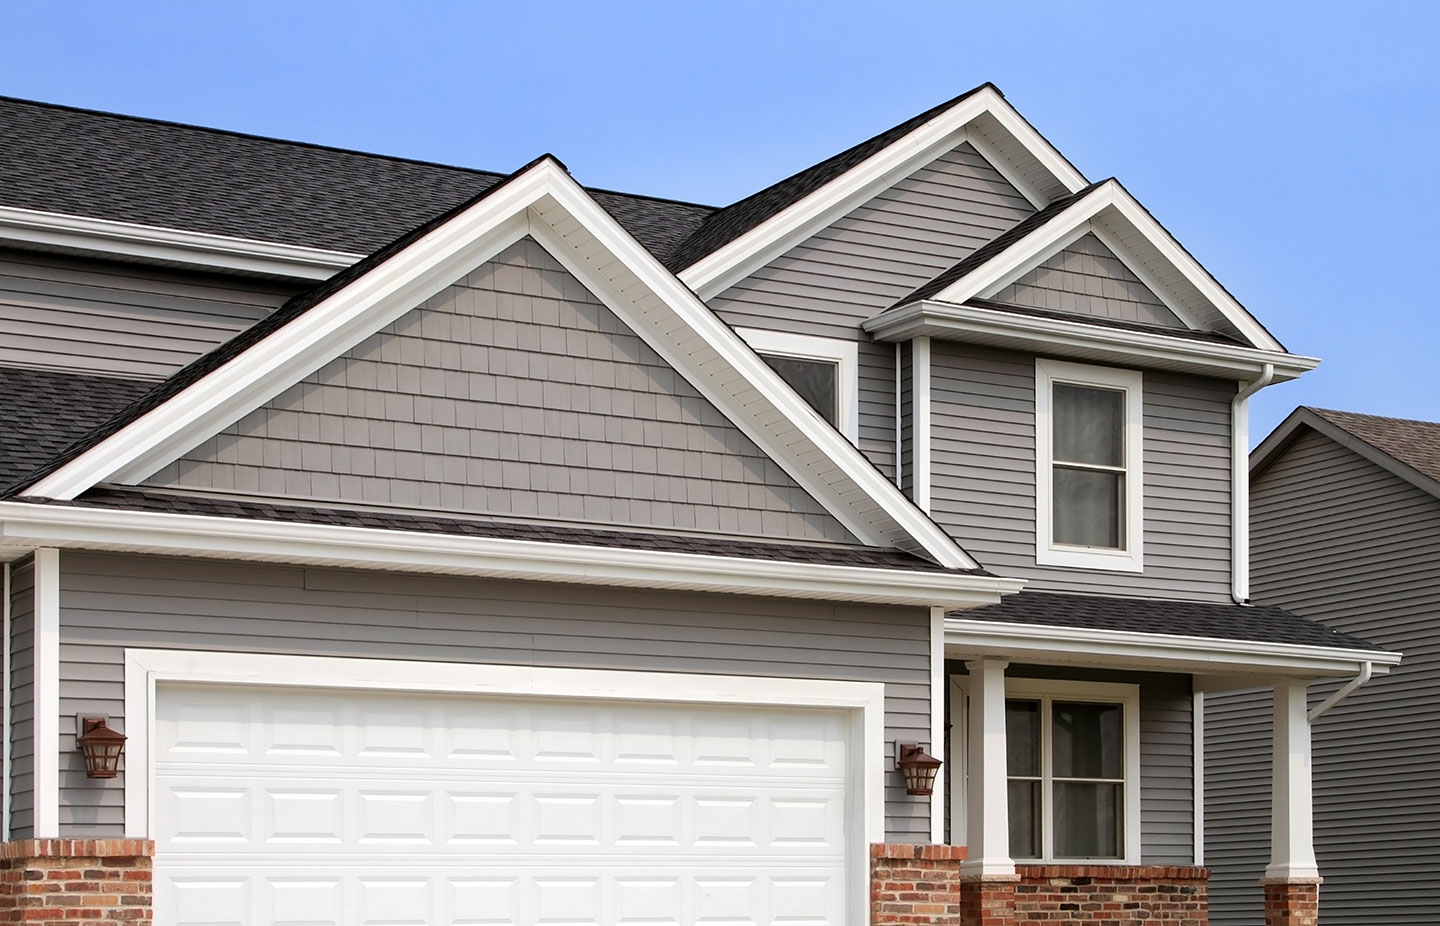 Vinyl Siding Installation Cost To Install Replace Vinyl Siding